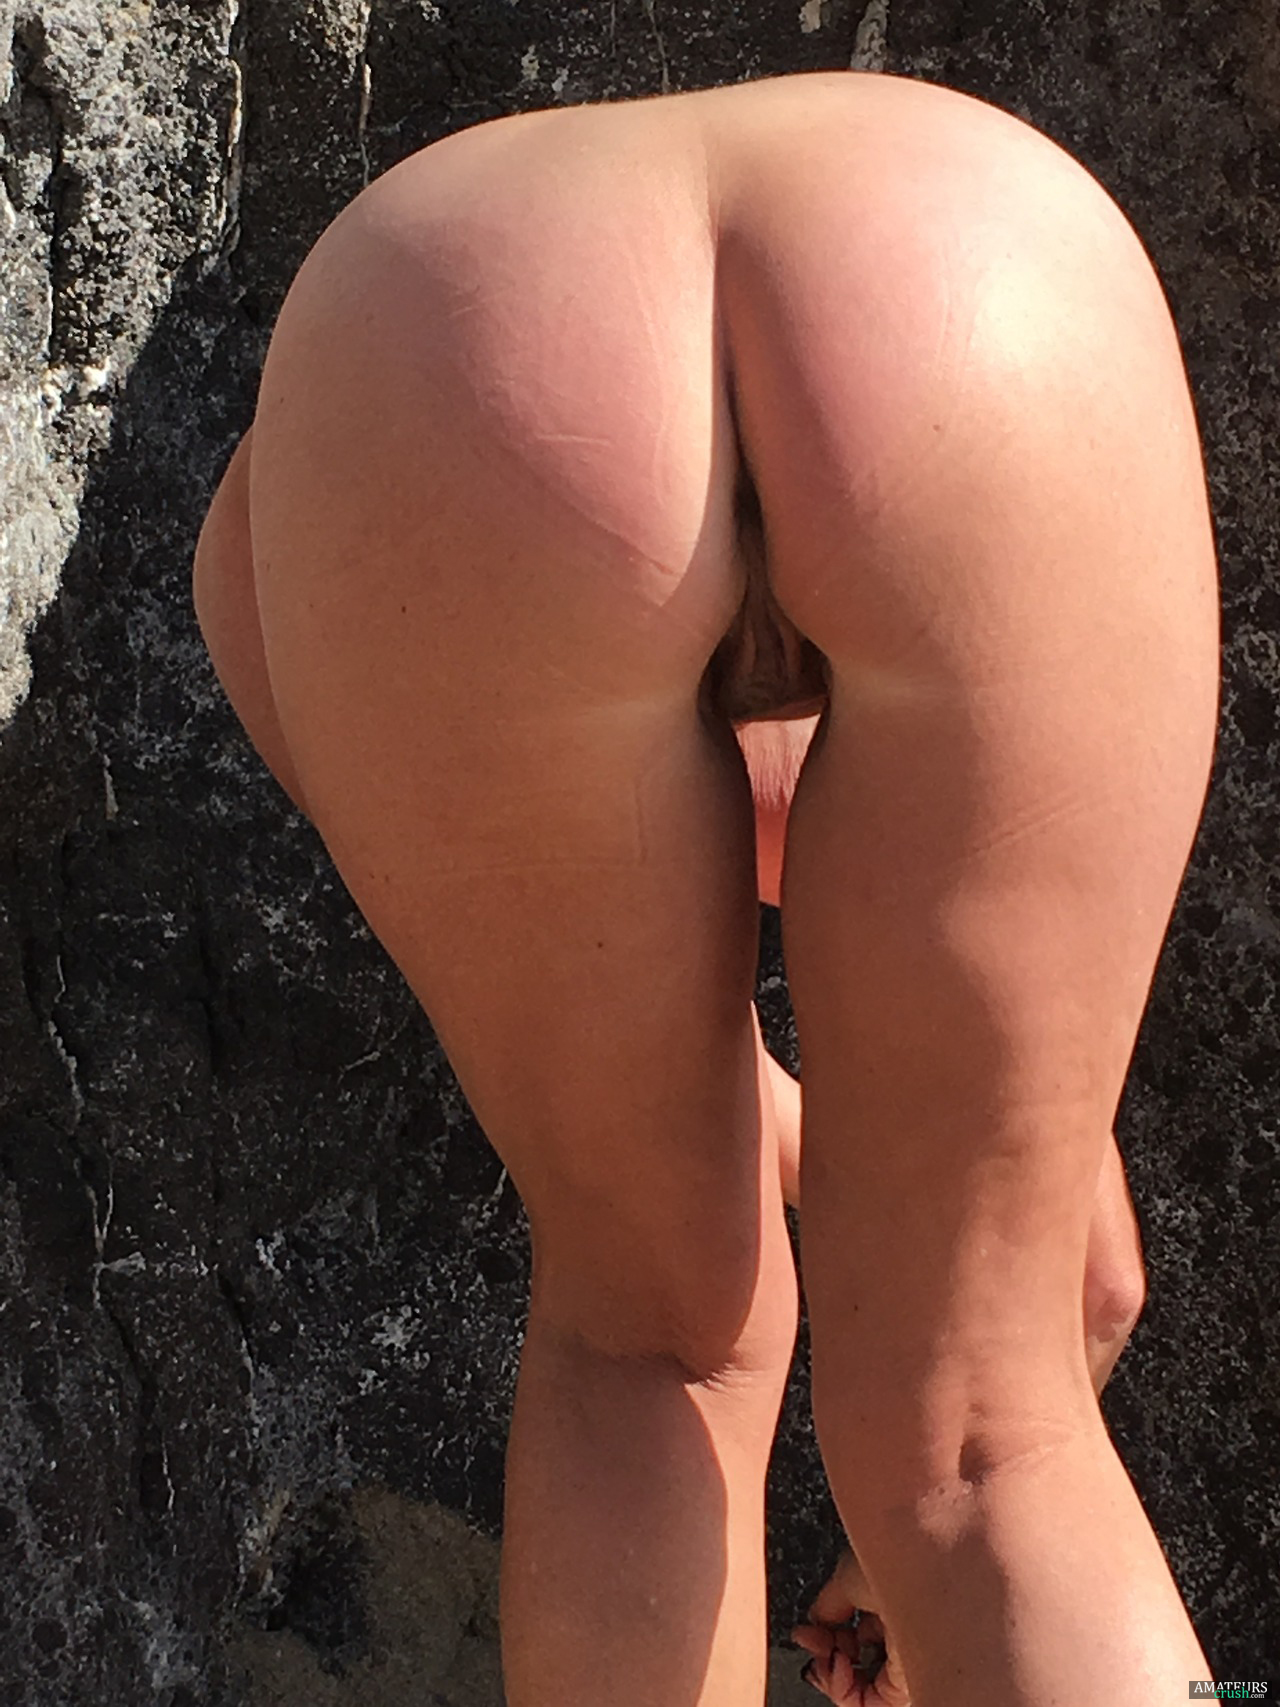 Pussy big ass pic